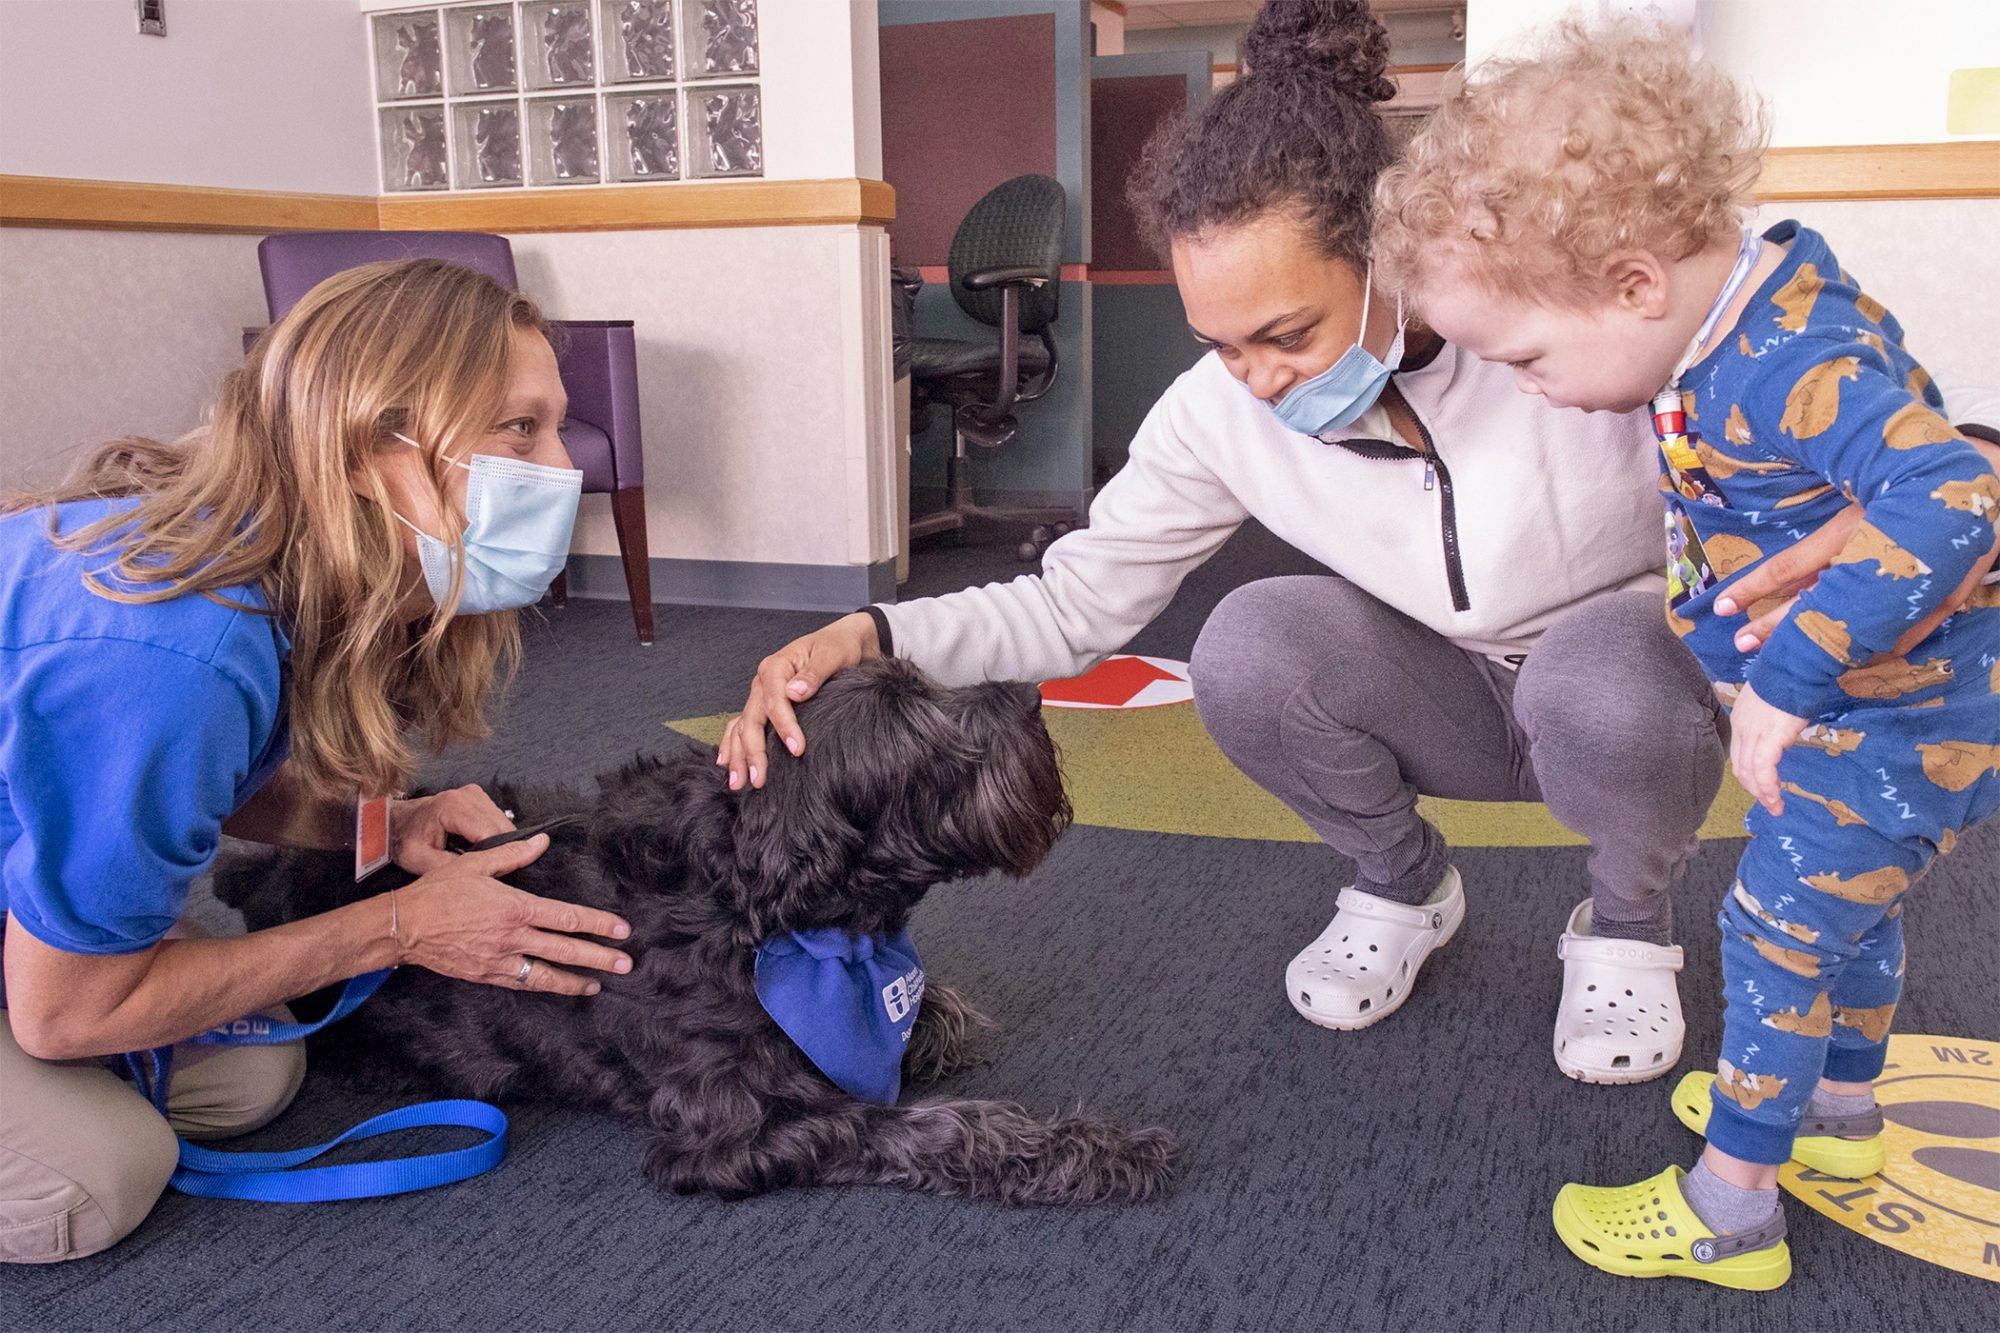 therapy dog comforting a pediatric toddler